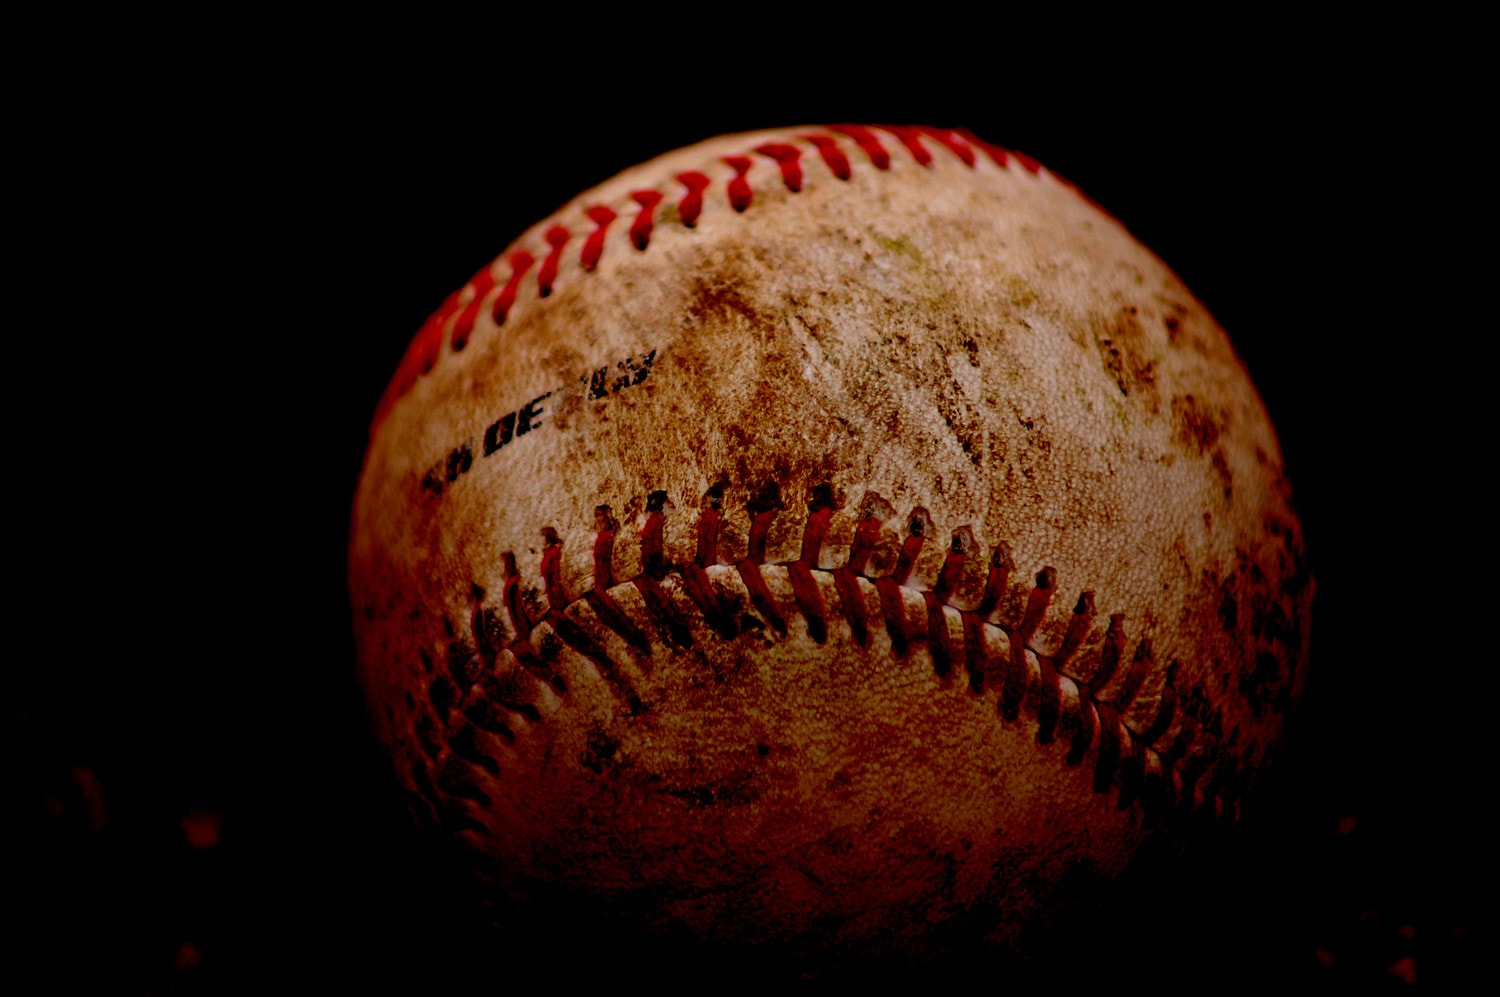 Baseball with dirt markings and stitches